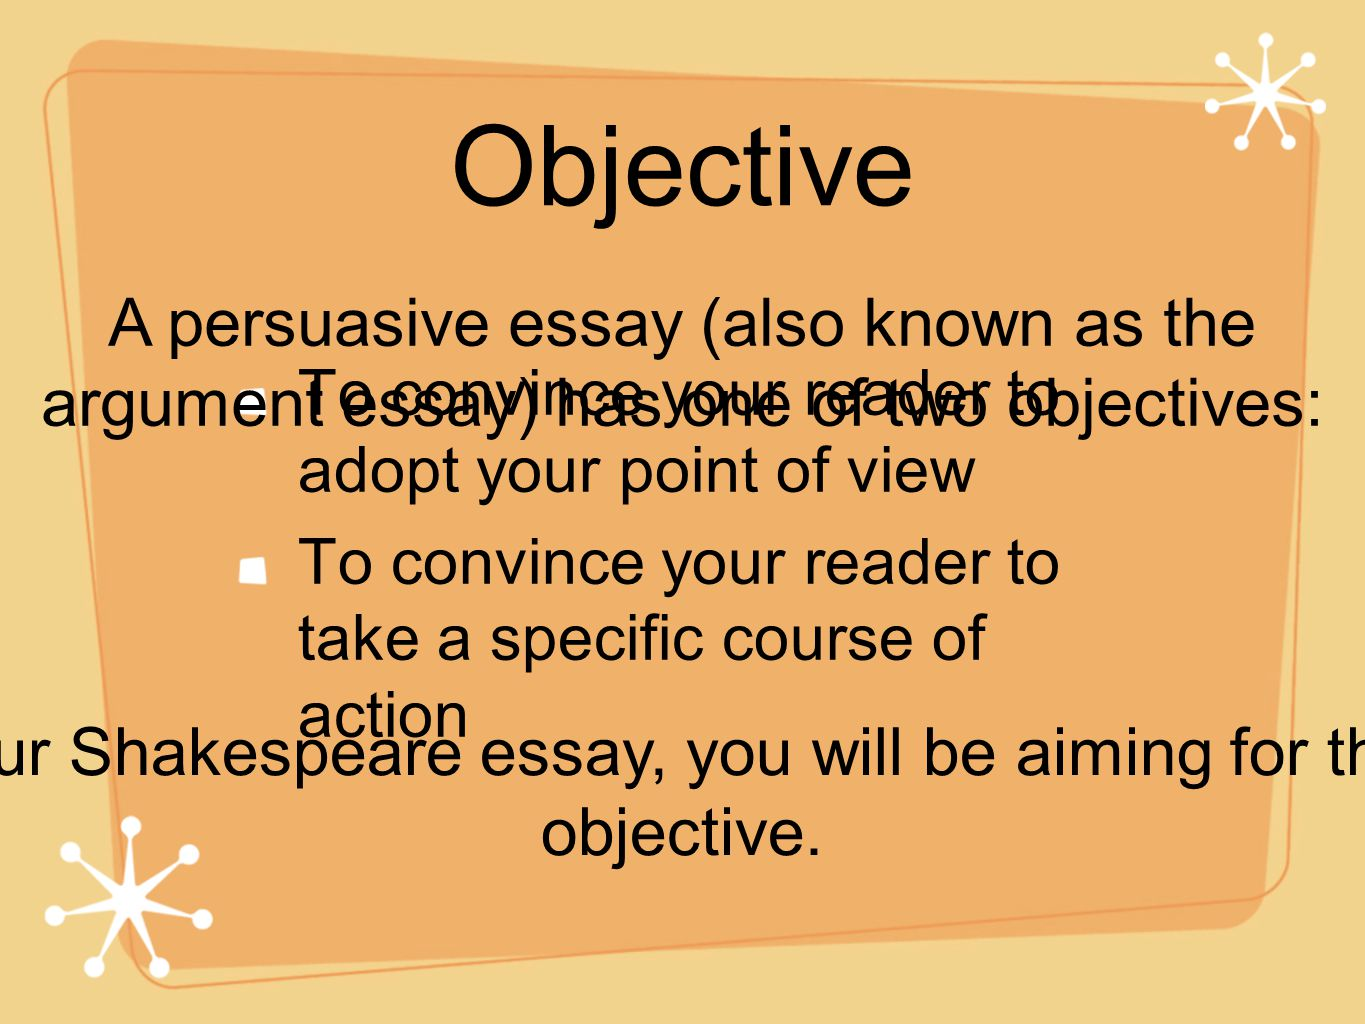 Objective argument essay